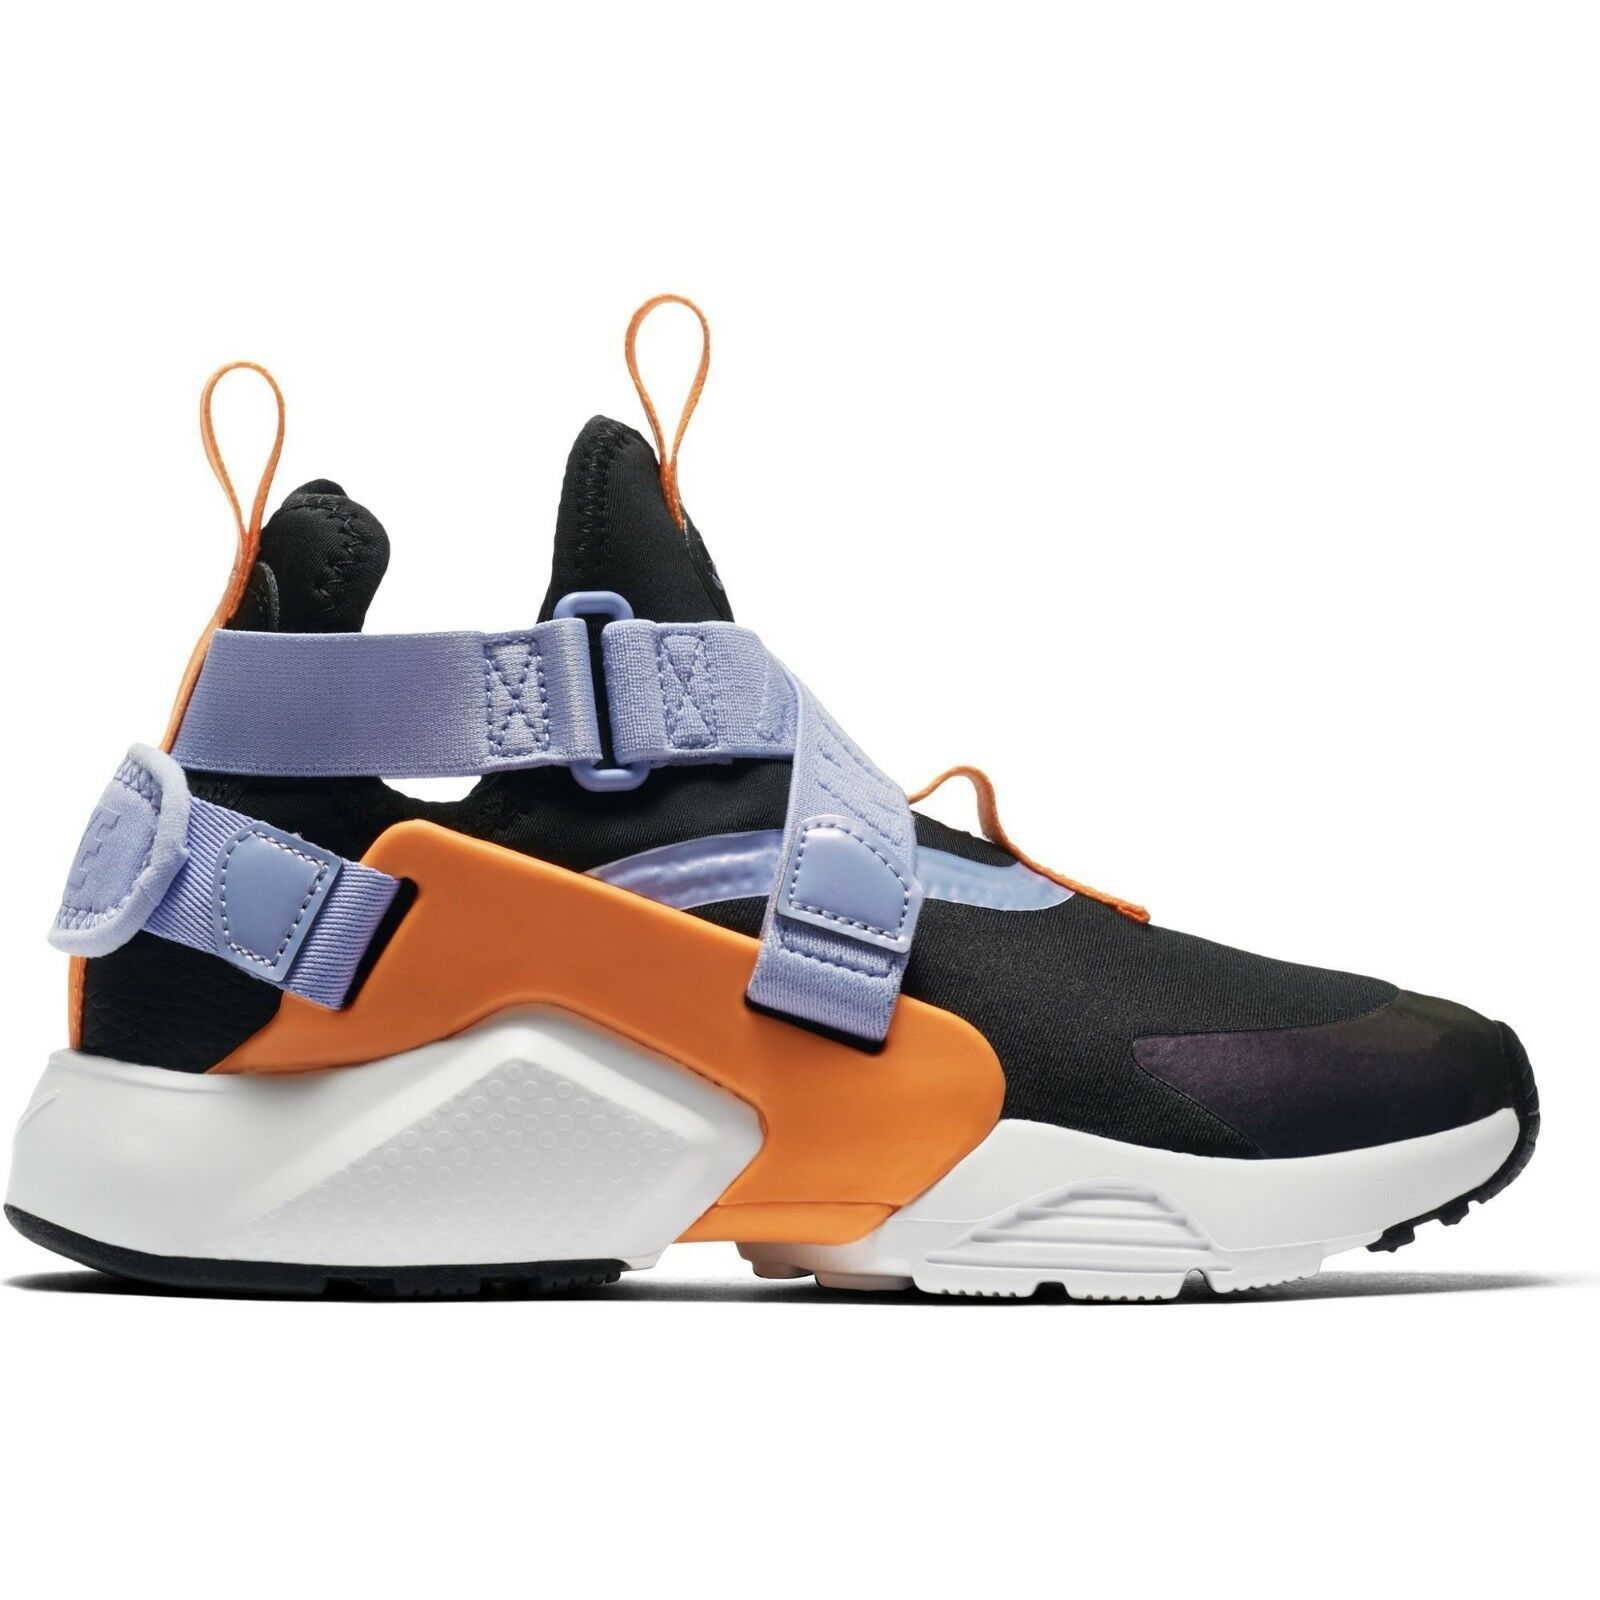 high top low price boys huaraches size 6.5 at the great lakes mall